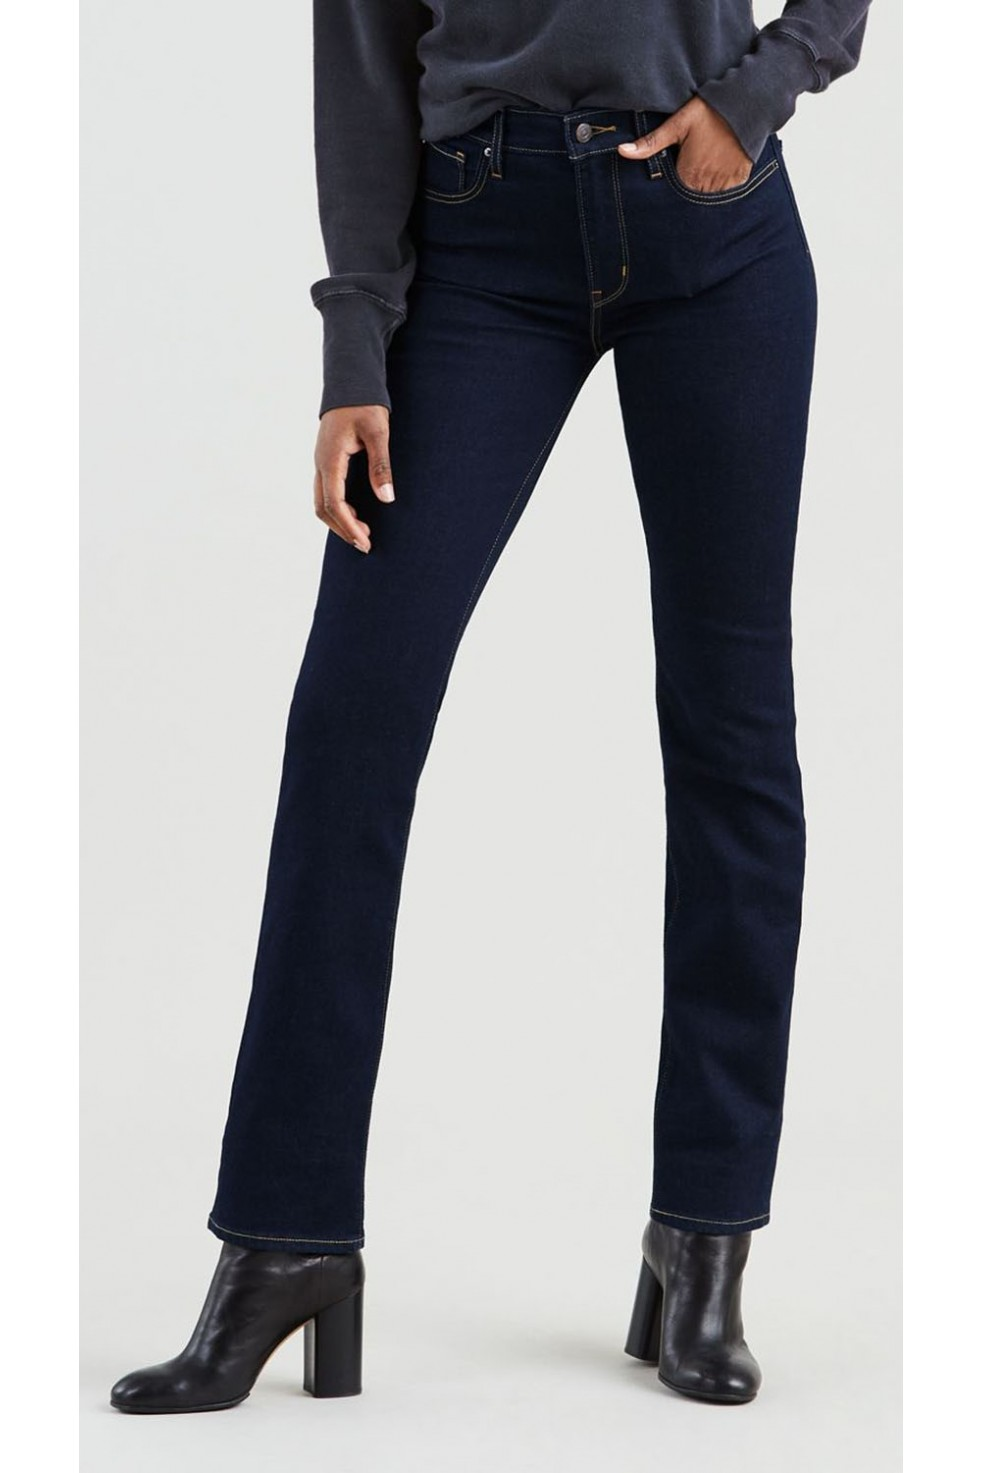 Levis Bayan Jean Pantolon 724 High Rise Straight 18883-0015